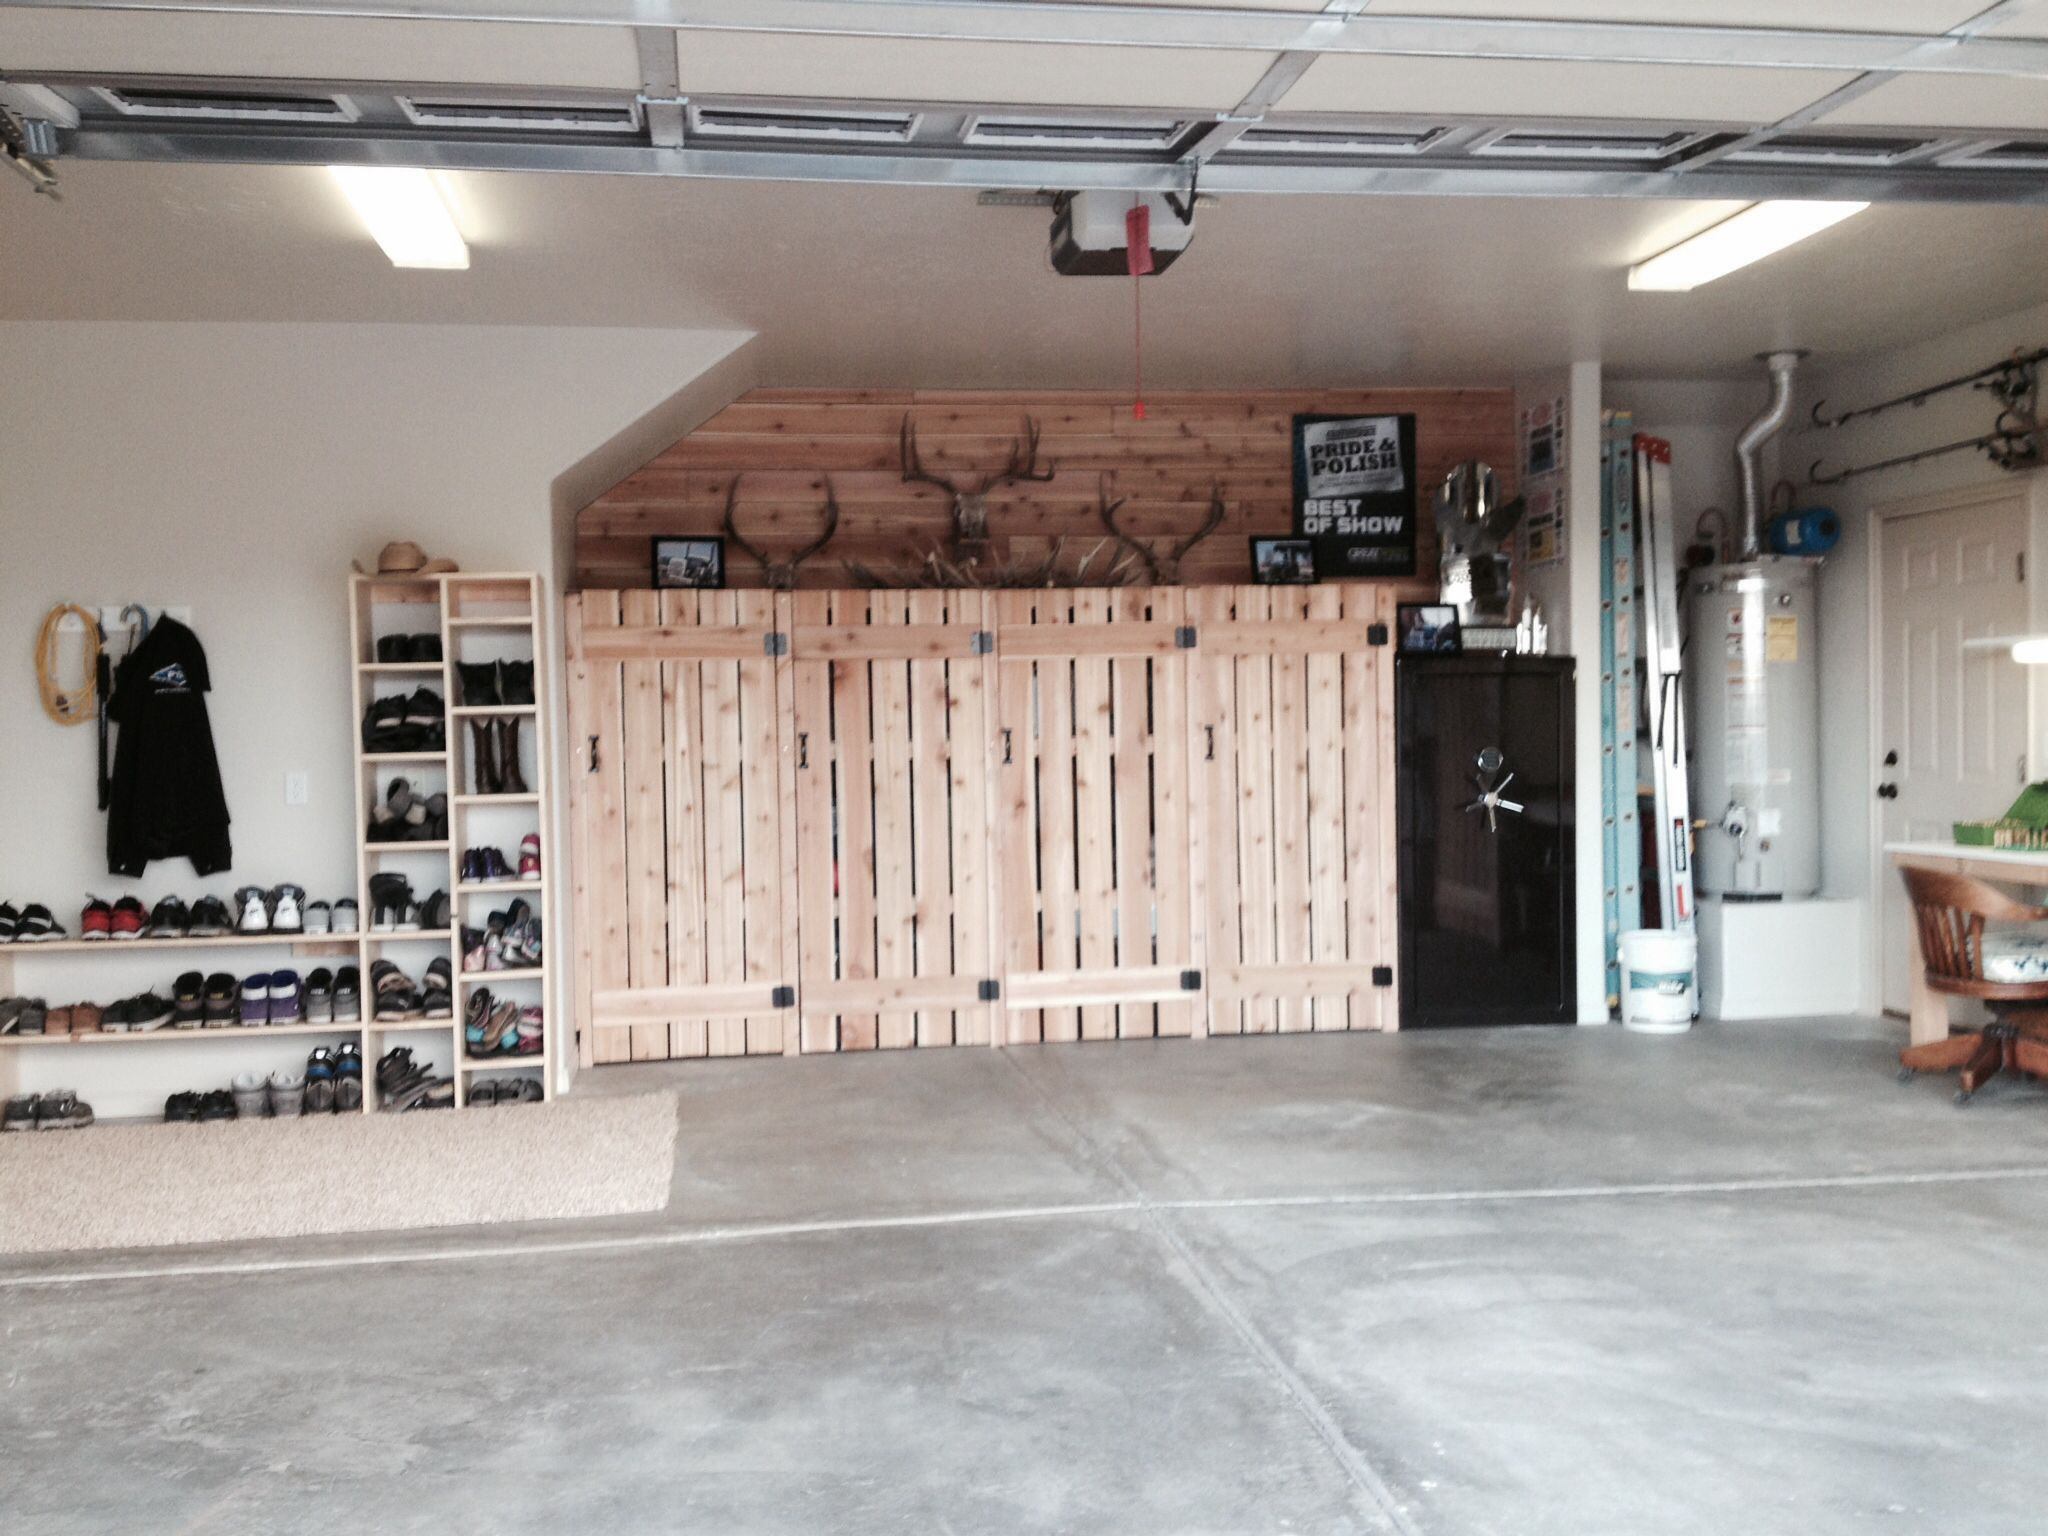 42 best hunting gear storage images on pinterest hunting gear perfect garage with outdoors feel lots of hidden storage for camping and hunting gear